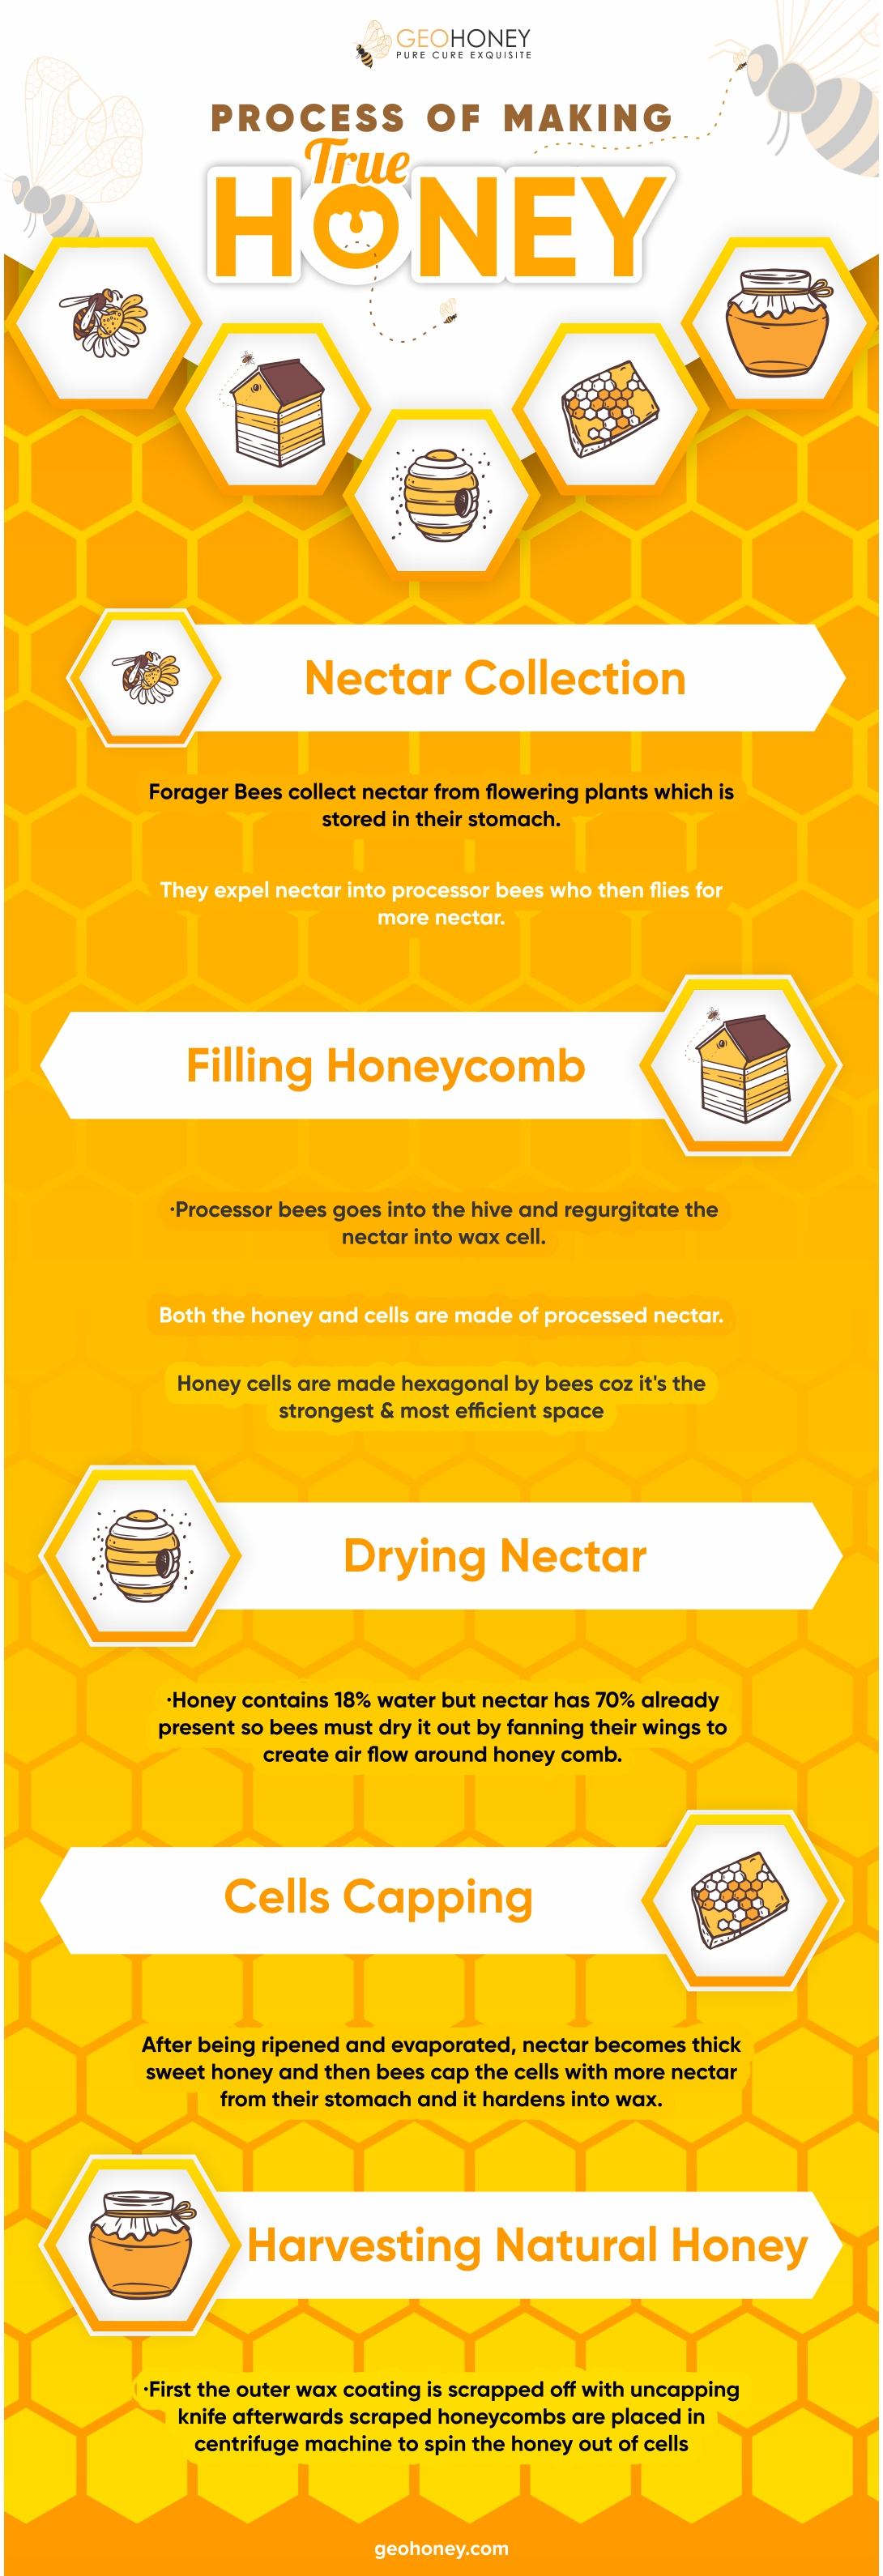 True honey process - Geohoney